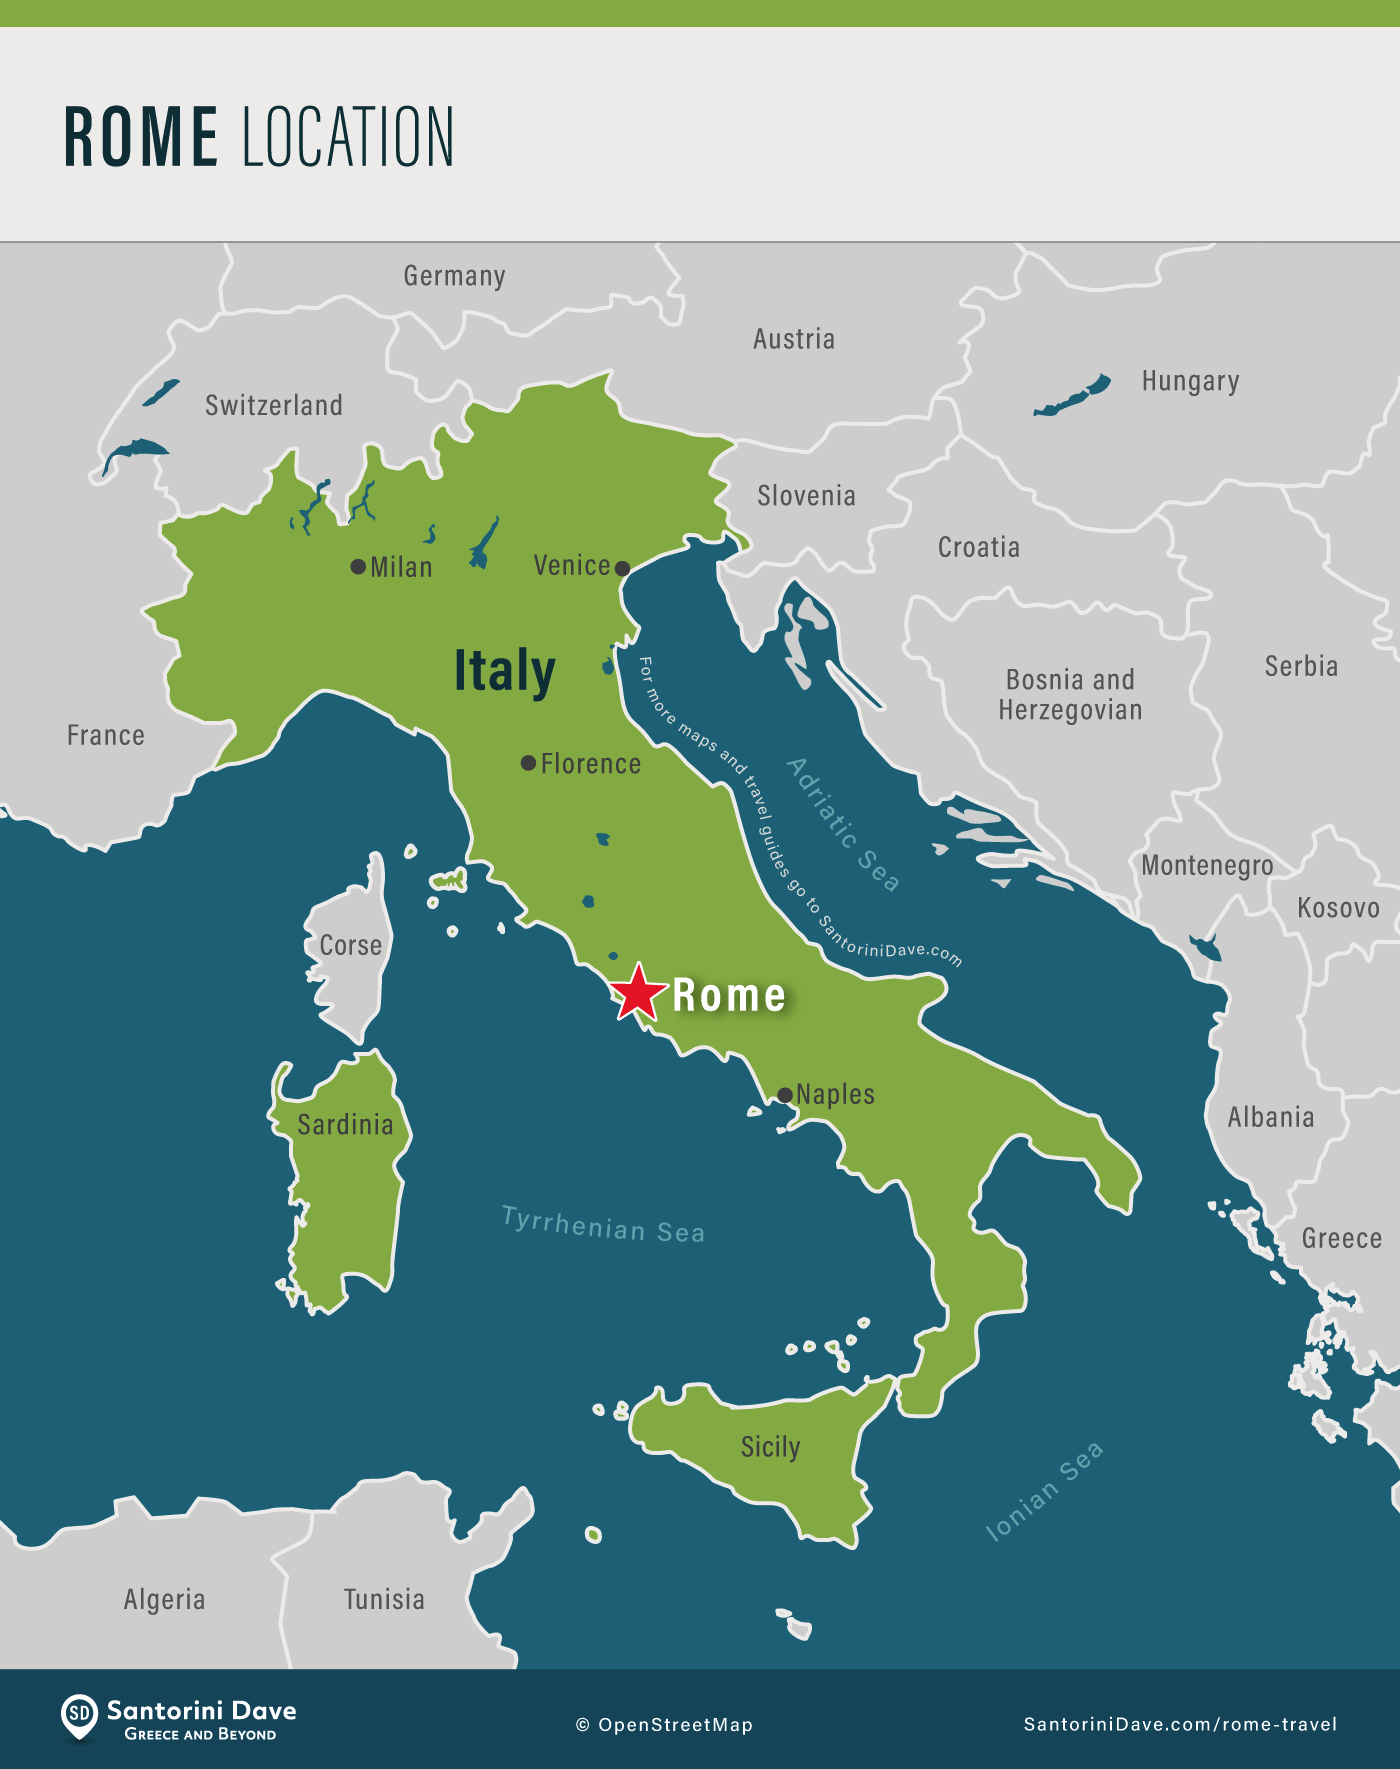 Maps showing location of Rome, Italy